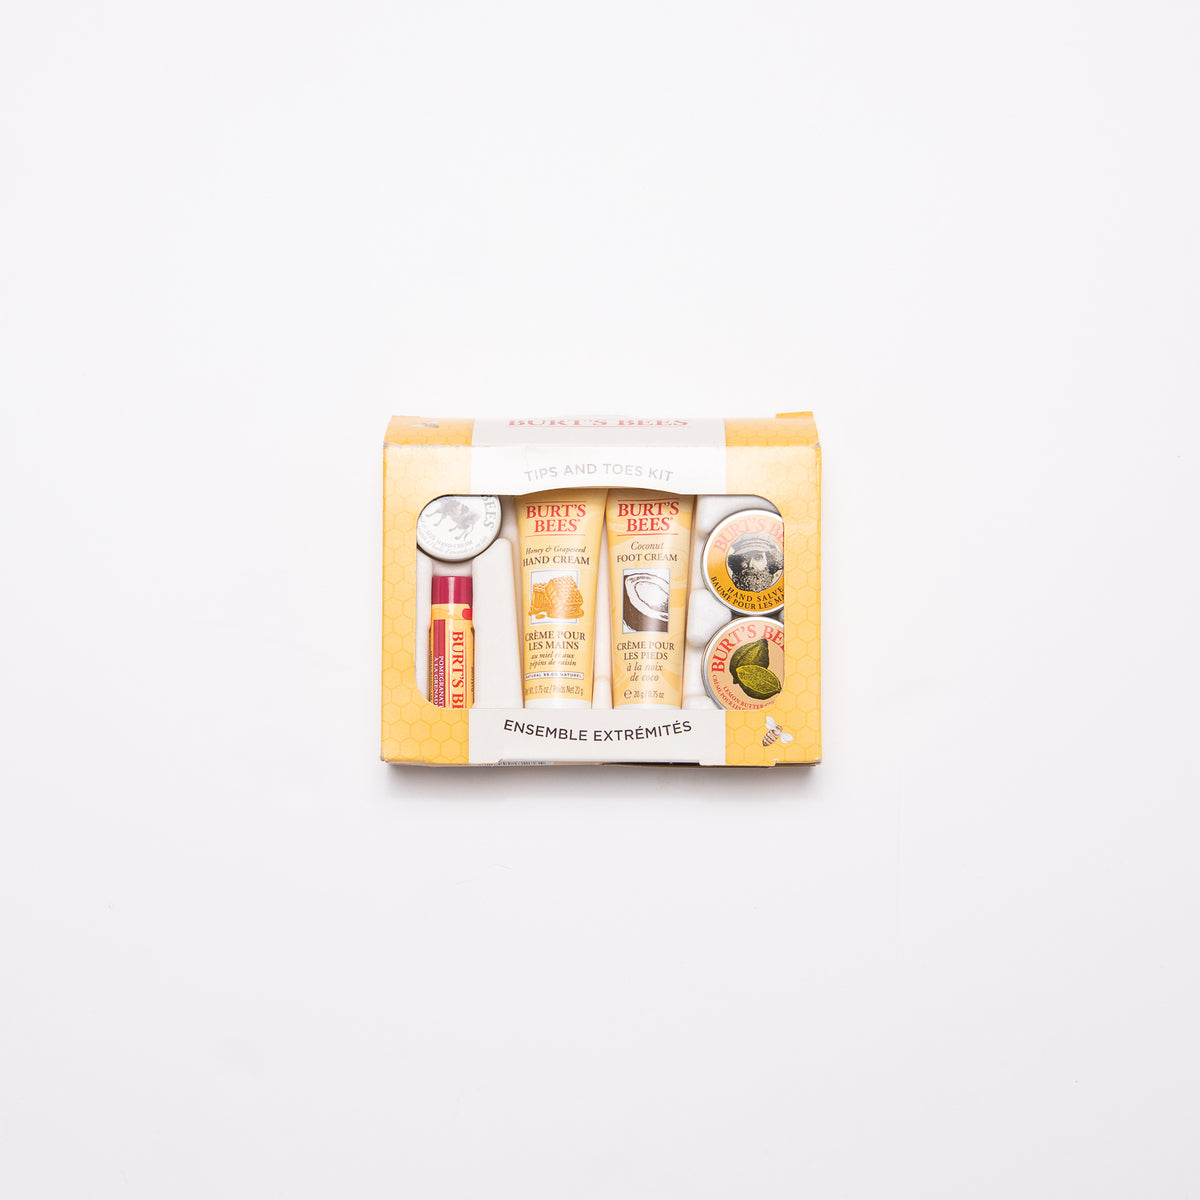 Burt's Bees Tips and Toes Starter Kit